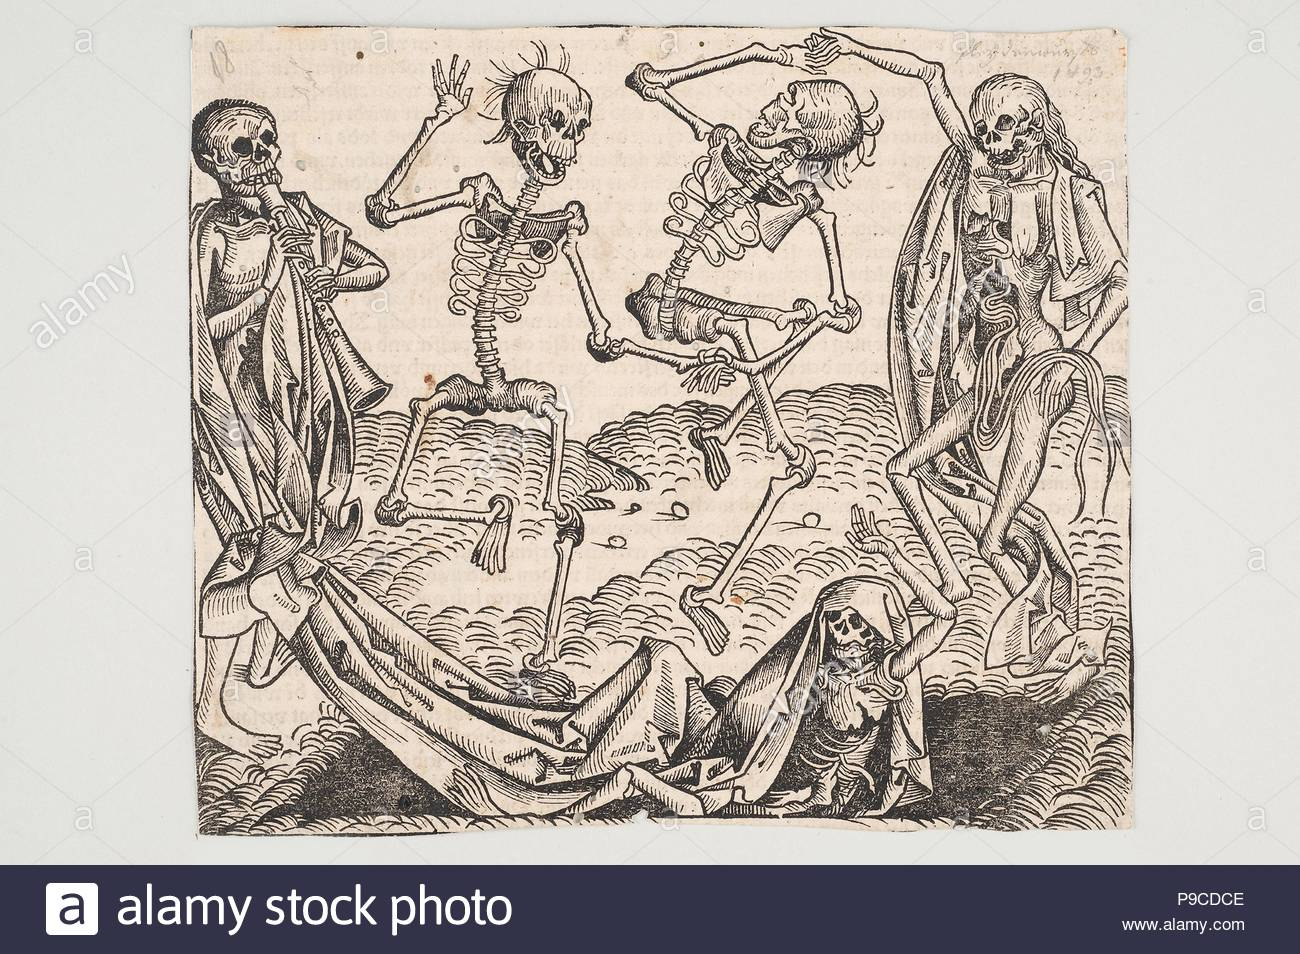 Dance of Death (from the Schedel's Chronicle of the World). Museum: Universalmuseum Joanneum. - Stock Image